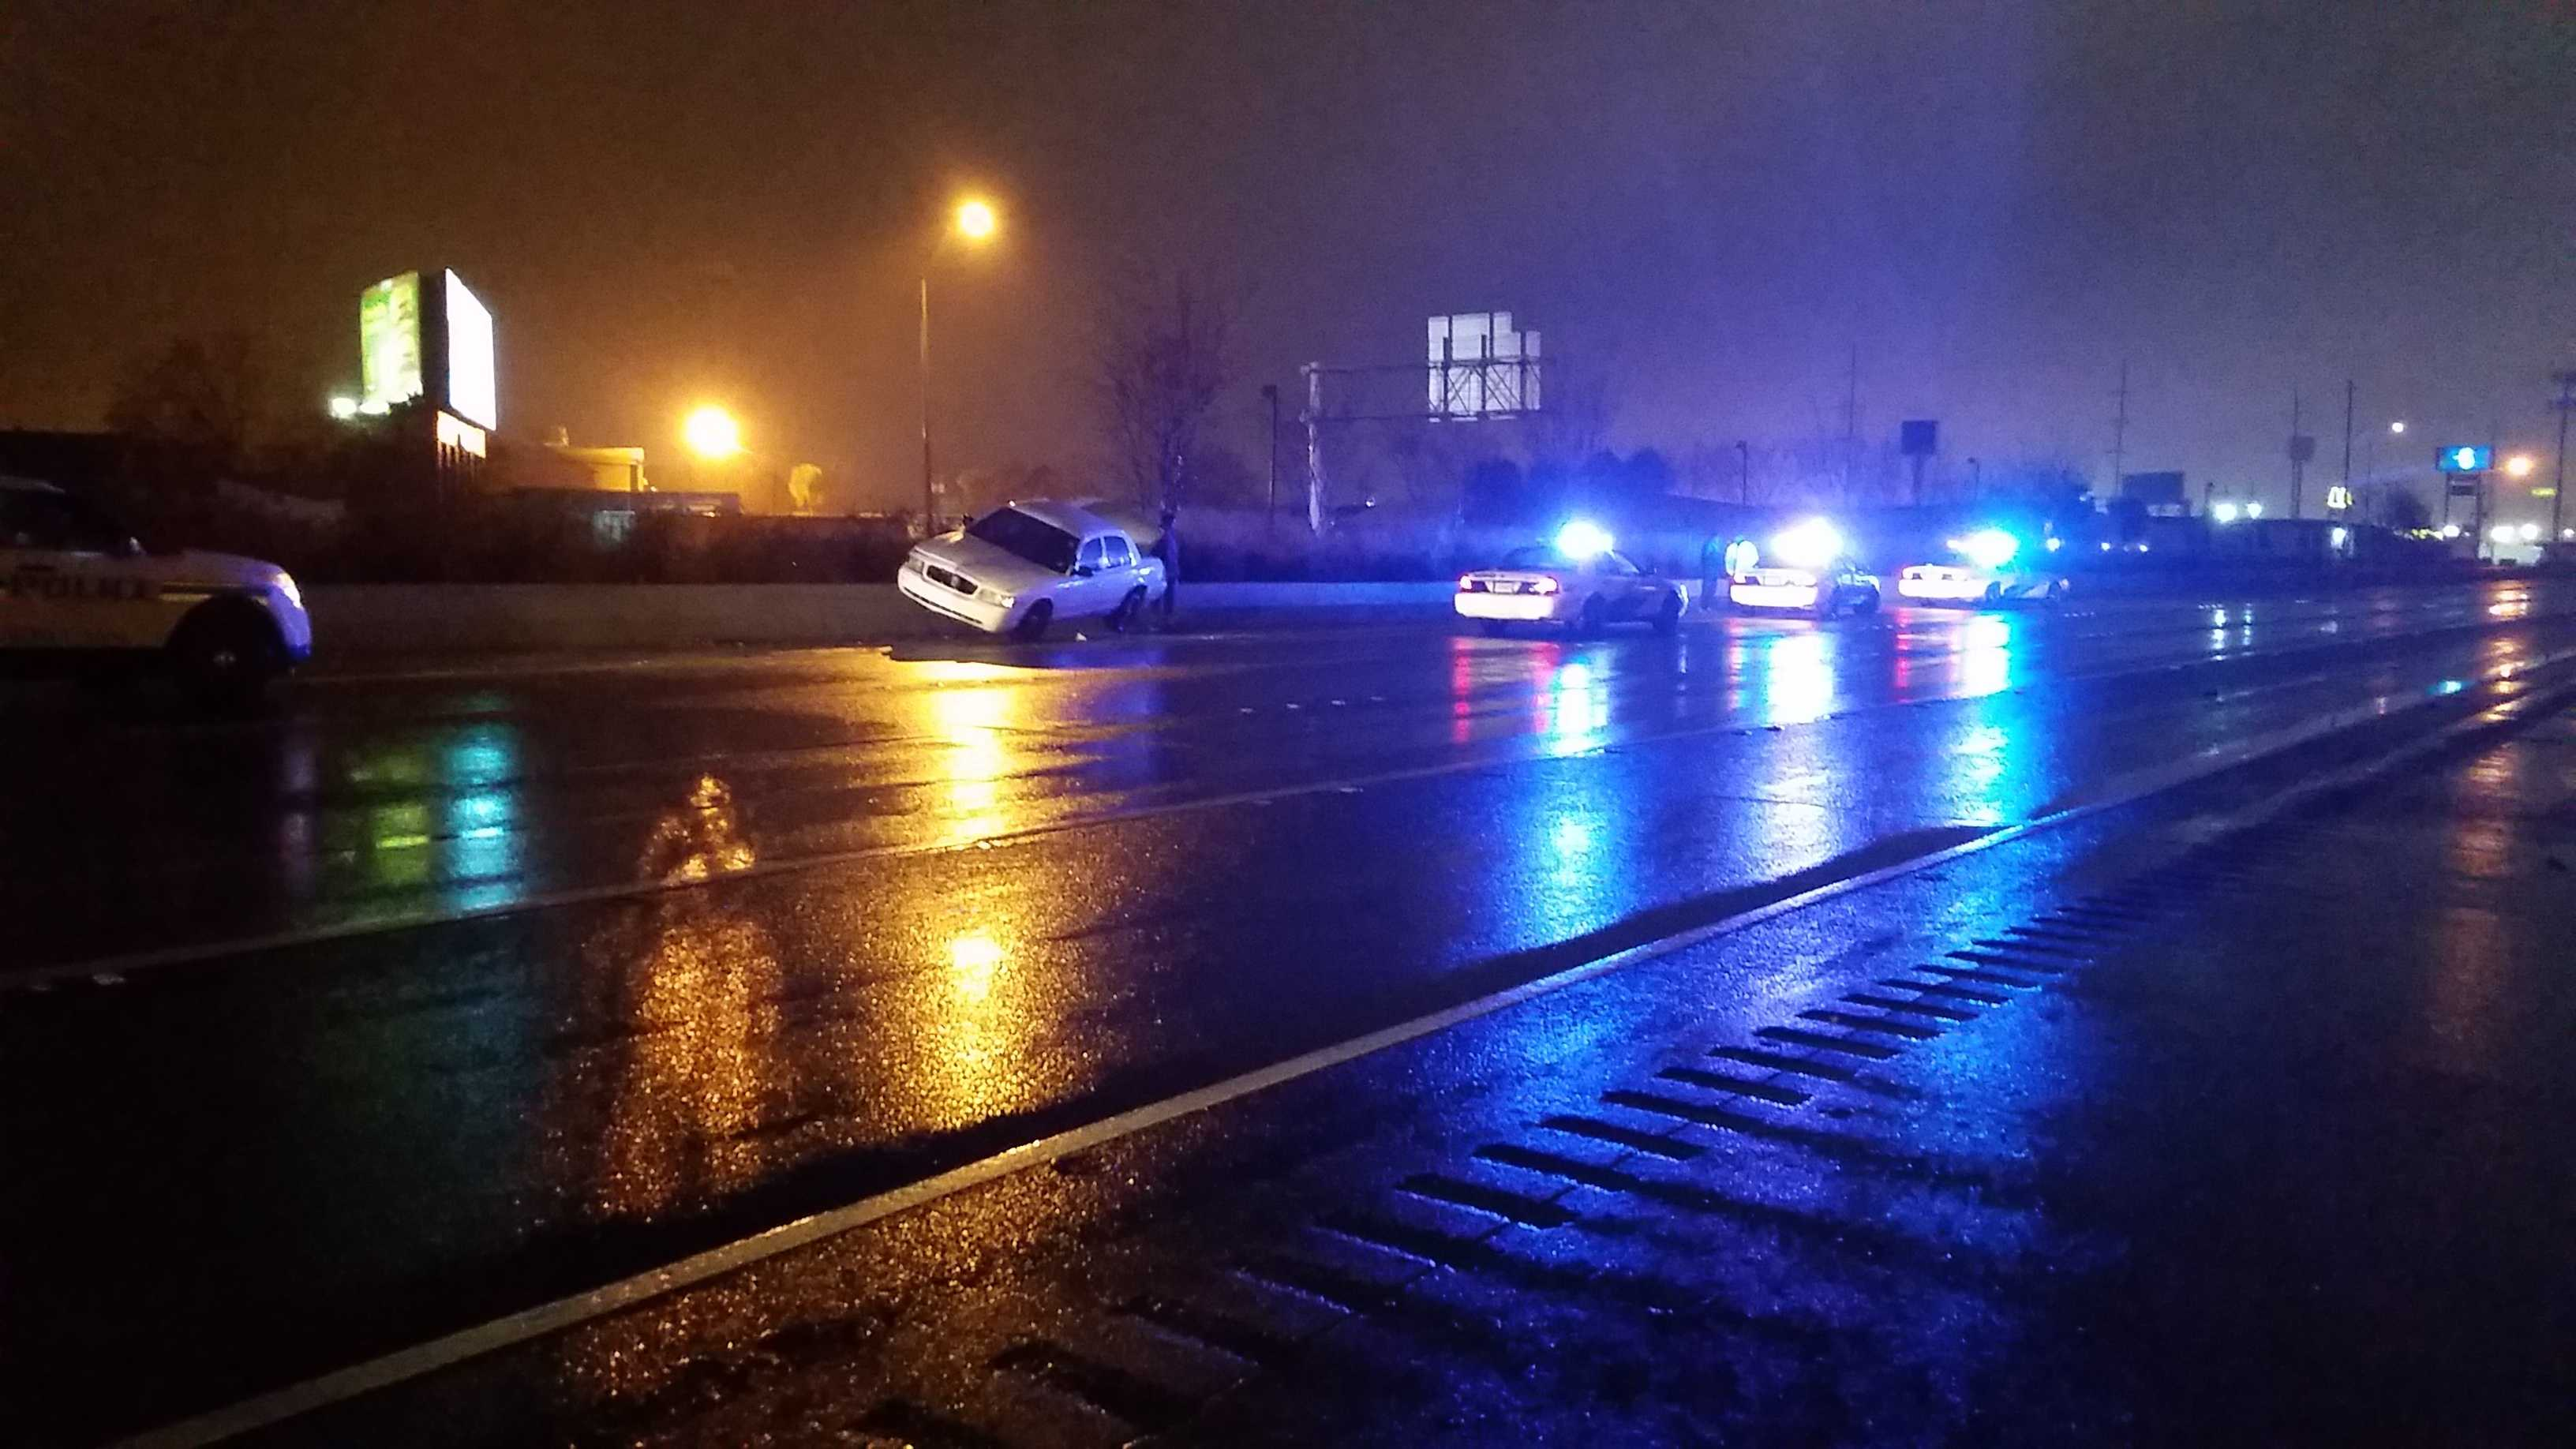 A New Orleans Police Department vehicle strikes a guardrail on Interstate 10 early Friday morning.